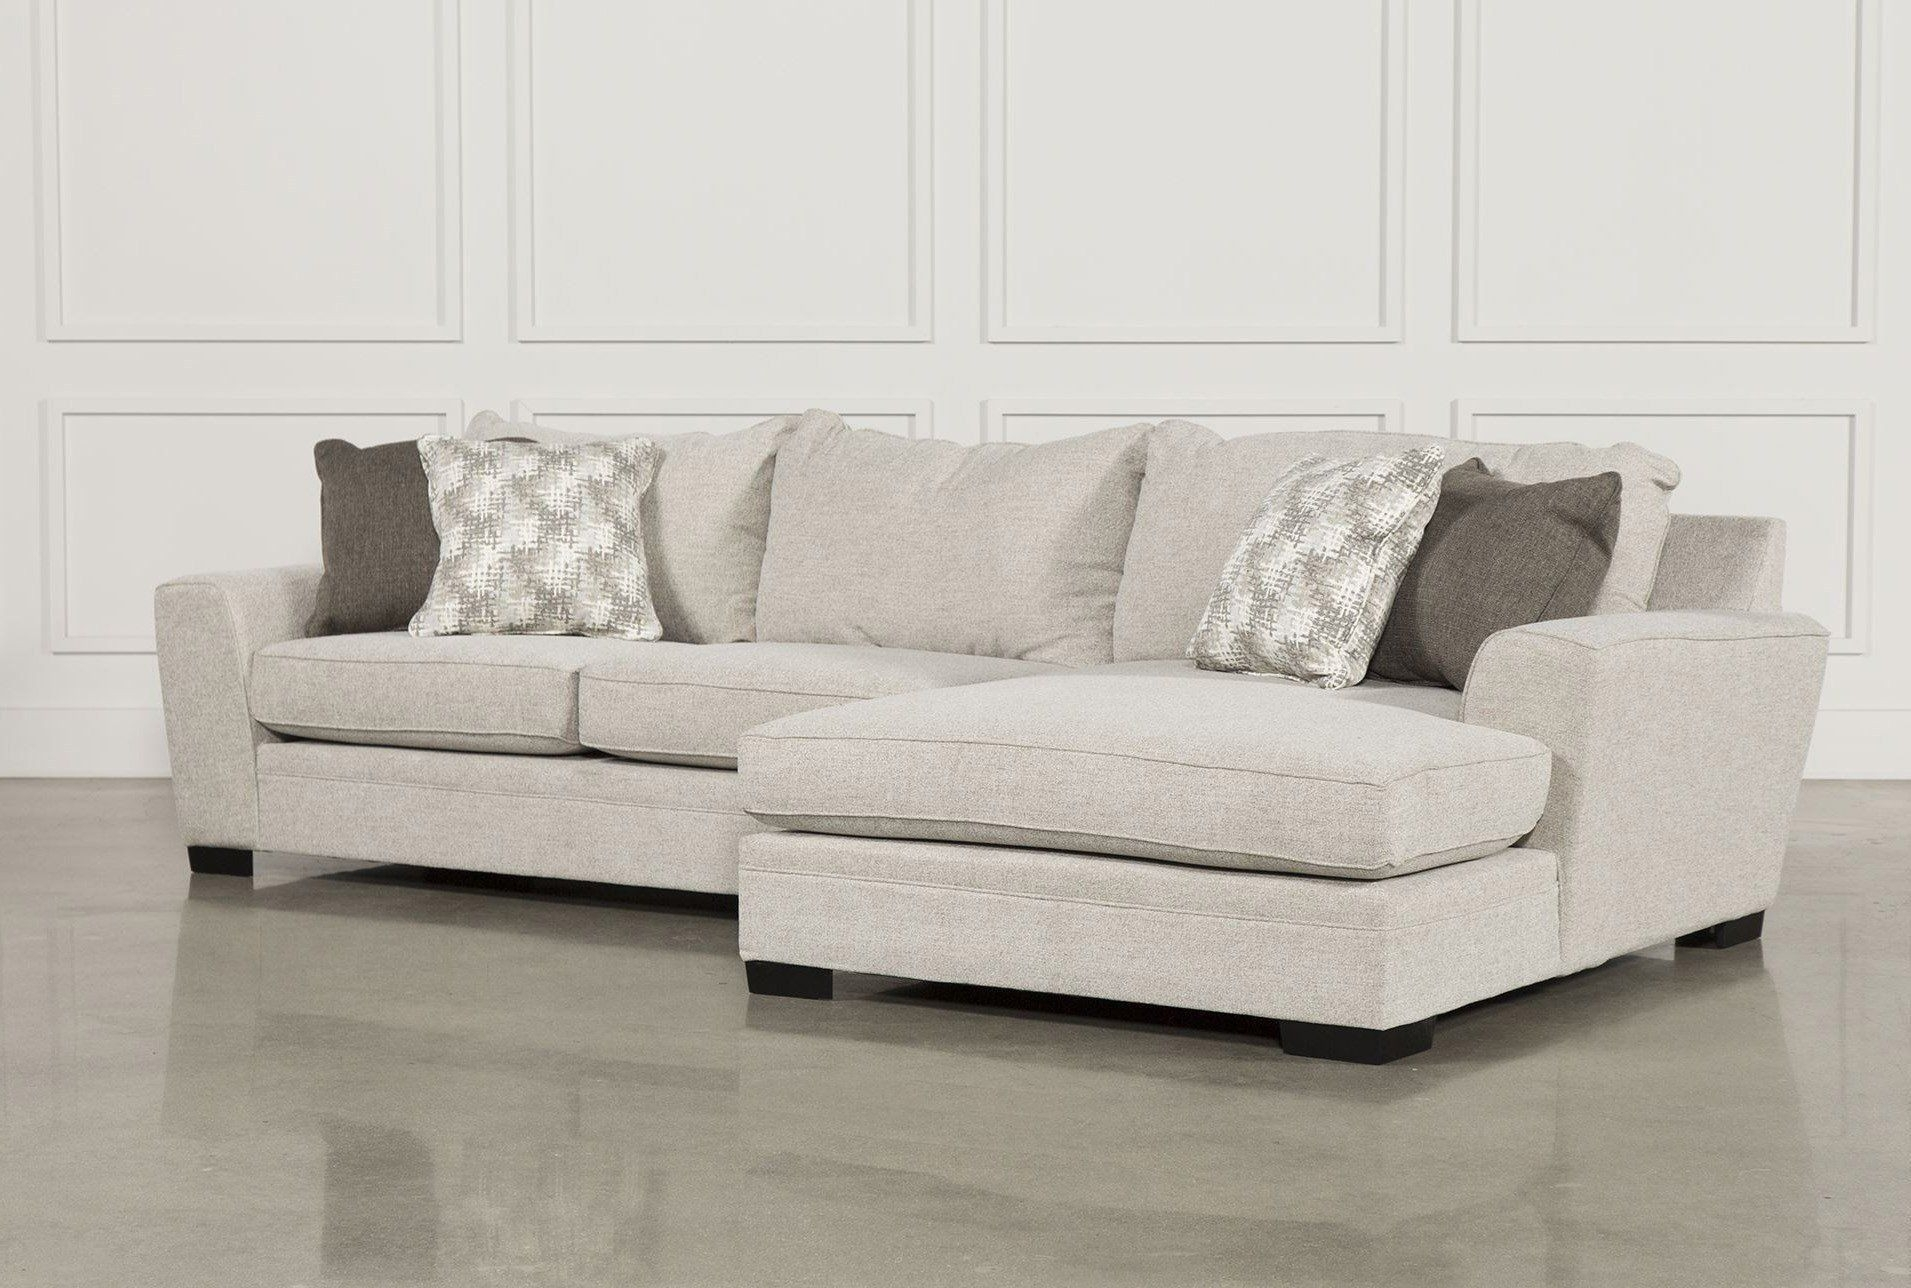 16 Luxury Serta Cooling Memoryfil Pillow | Beautiful Pillow Design throughout Aquarius Light Grey 2 Piece Sectionals With Raf Chaise